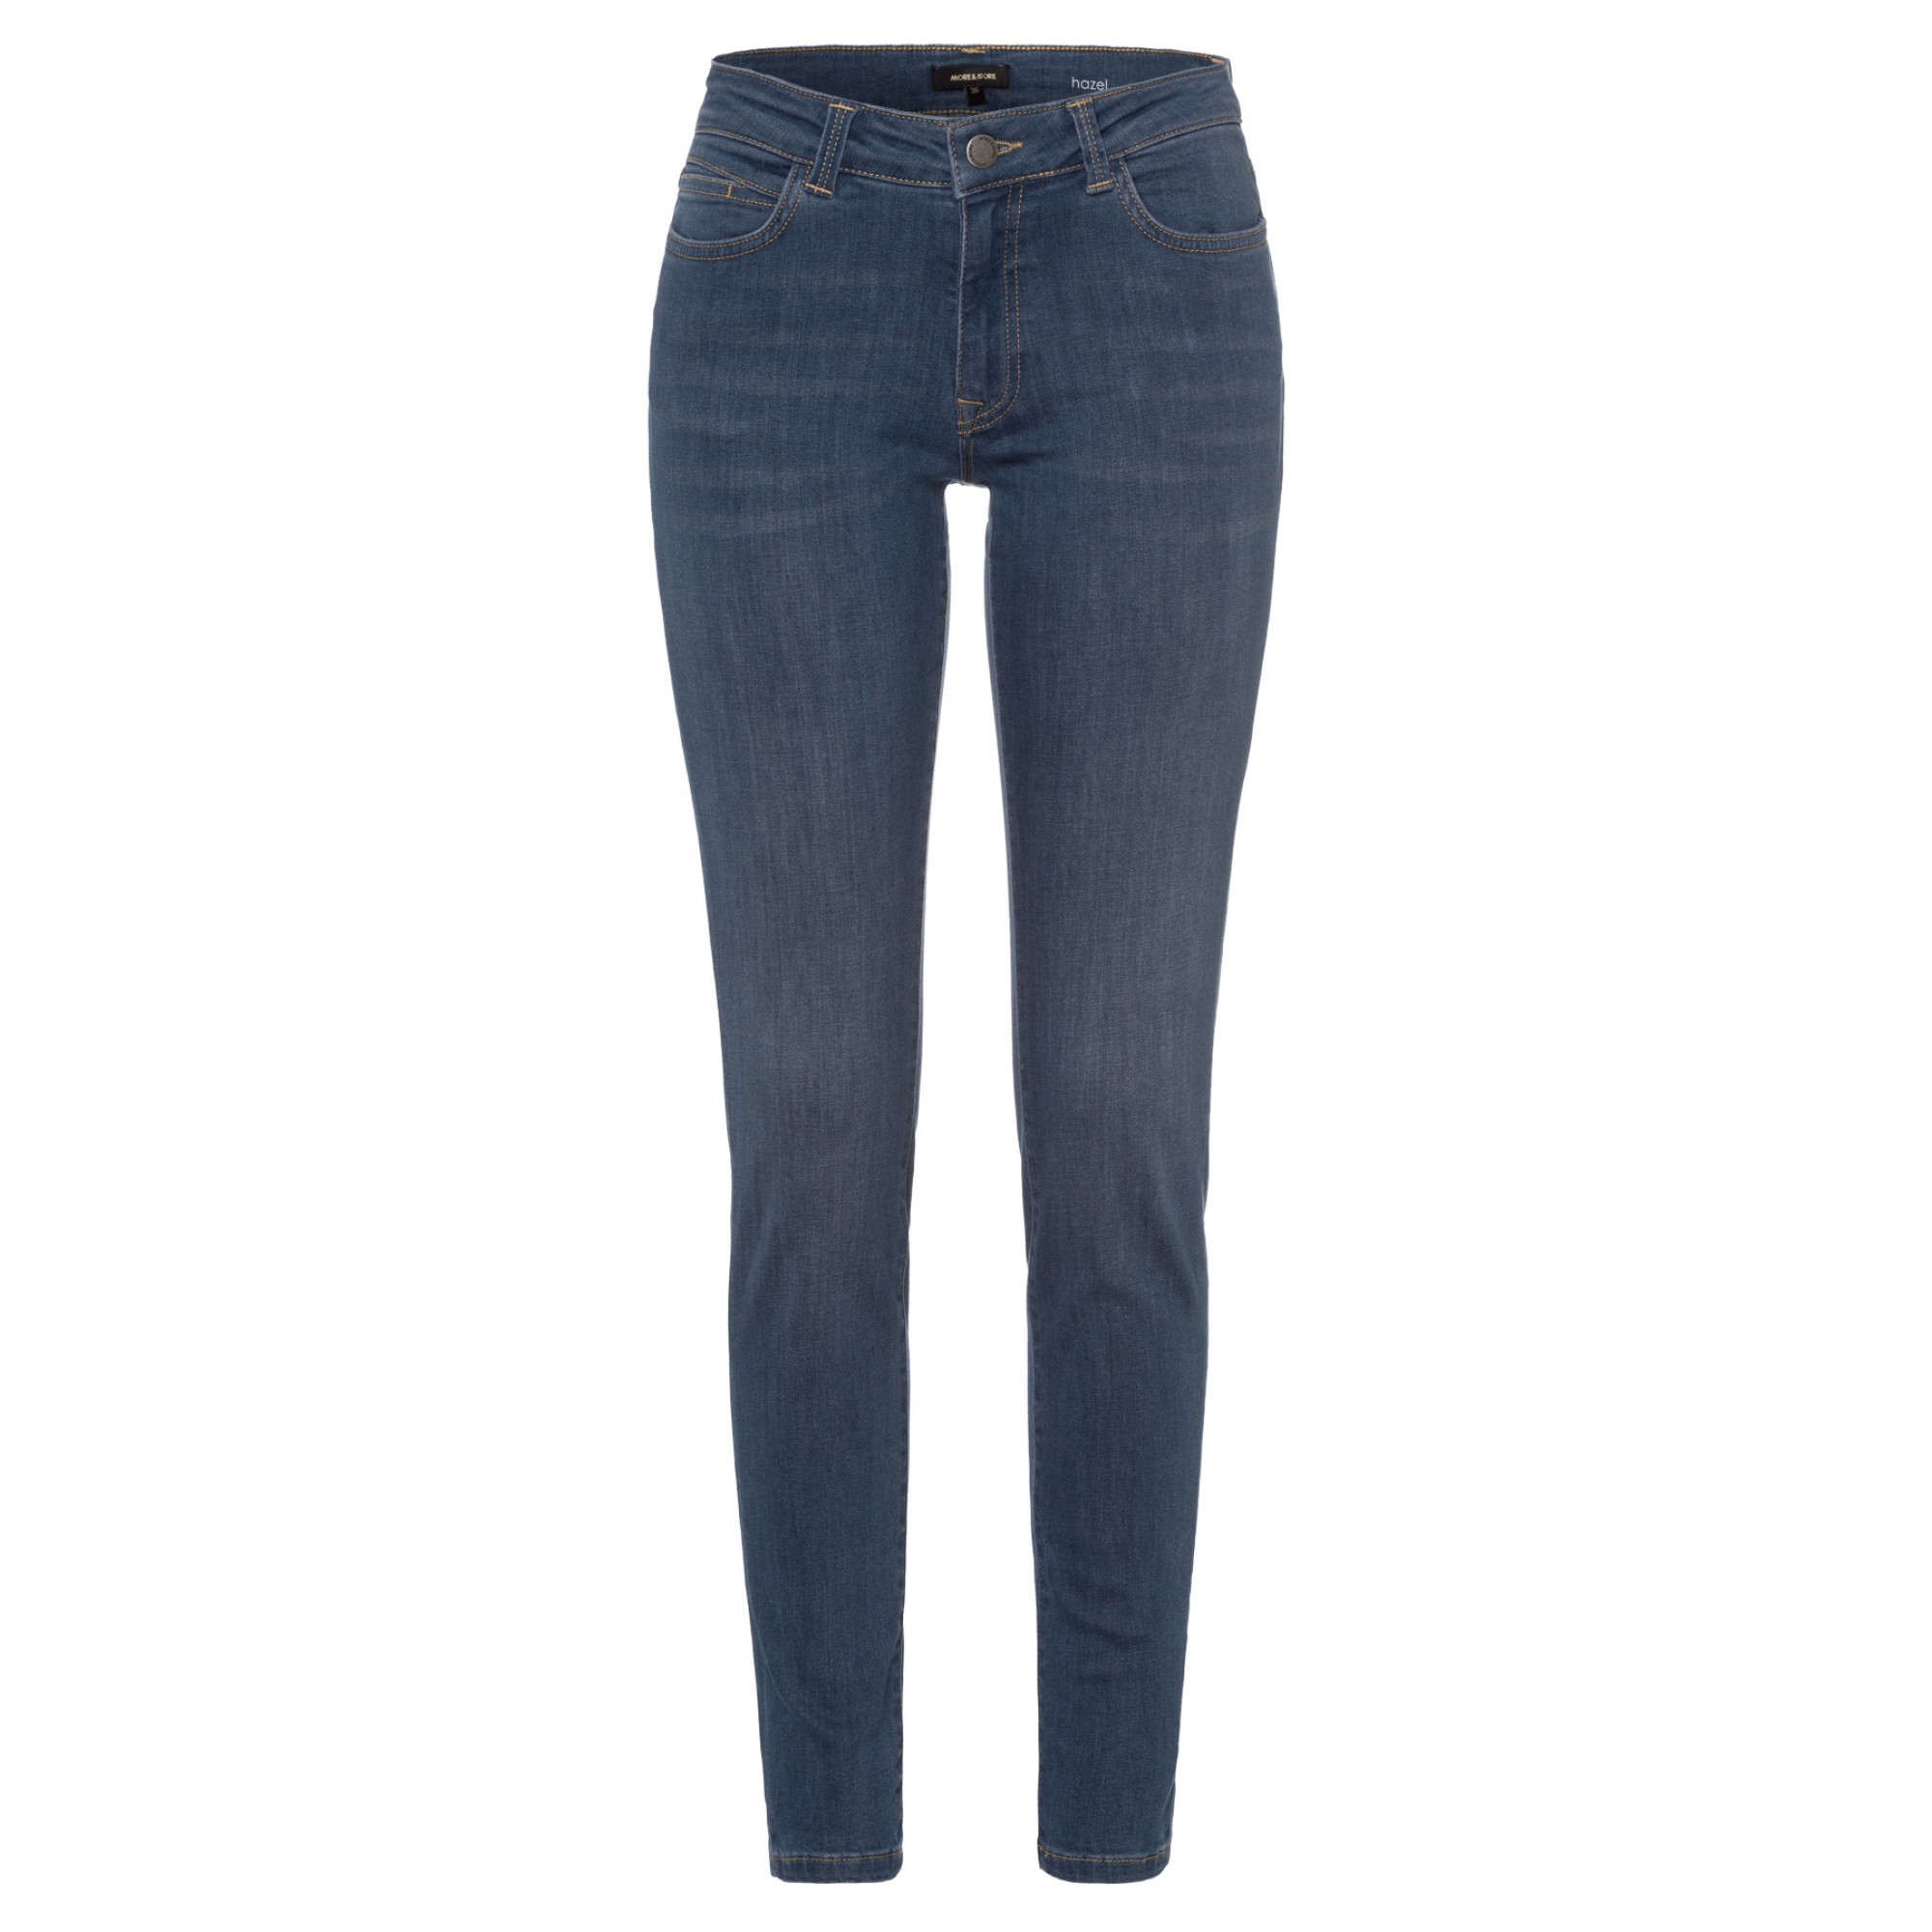 Five Pocket Jeans, Hazel 91074201-0962 1